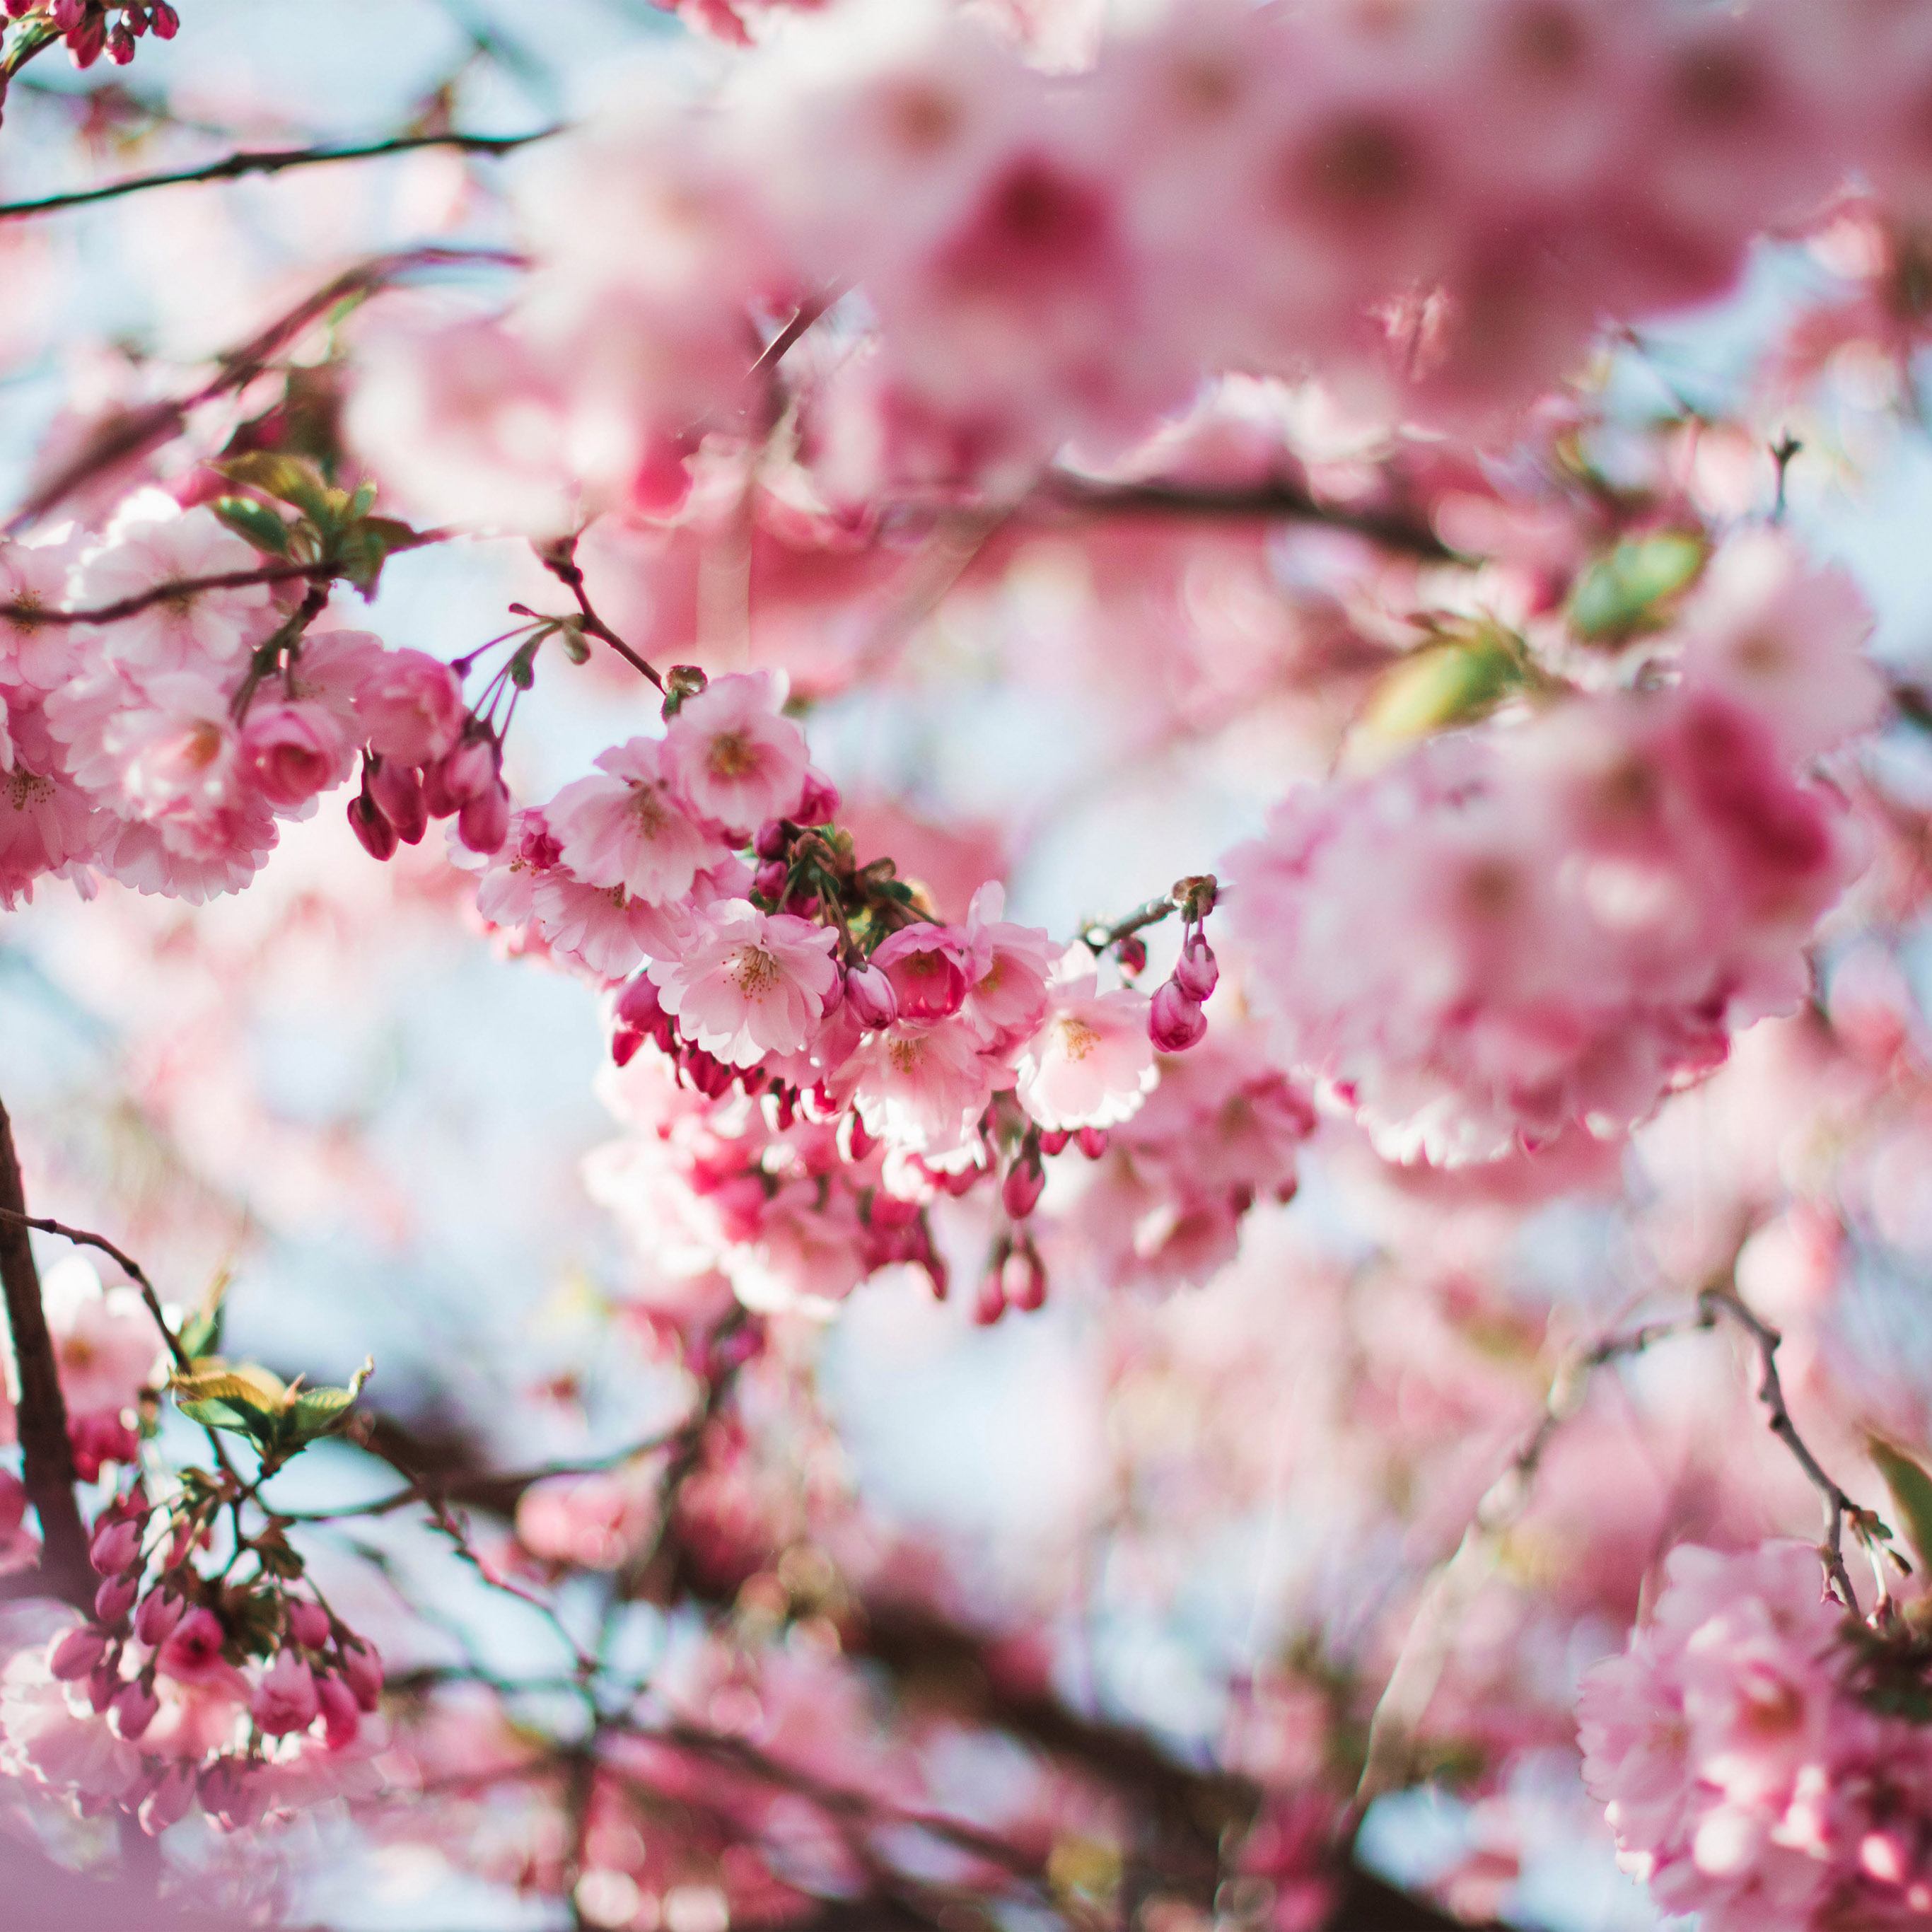 Nx72 Spring Cherry Blossom Tree Flower Pink Nature Wallpaper